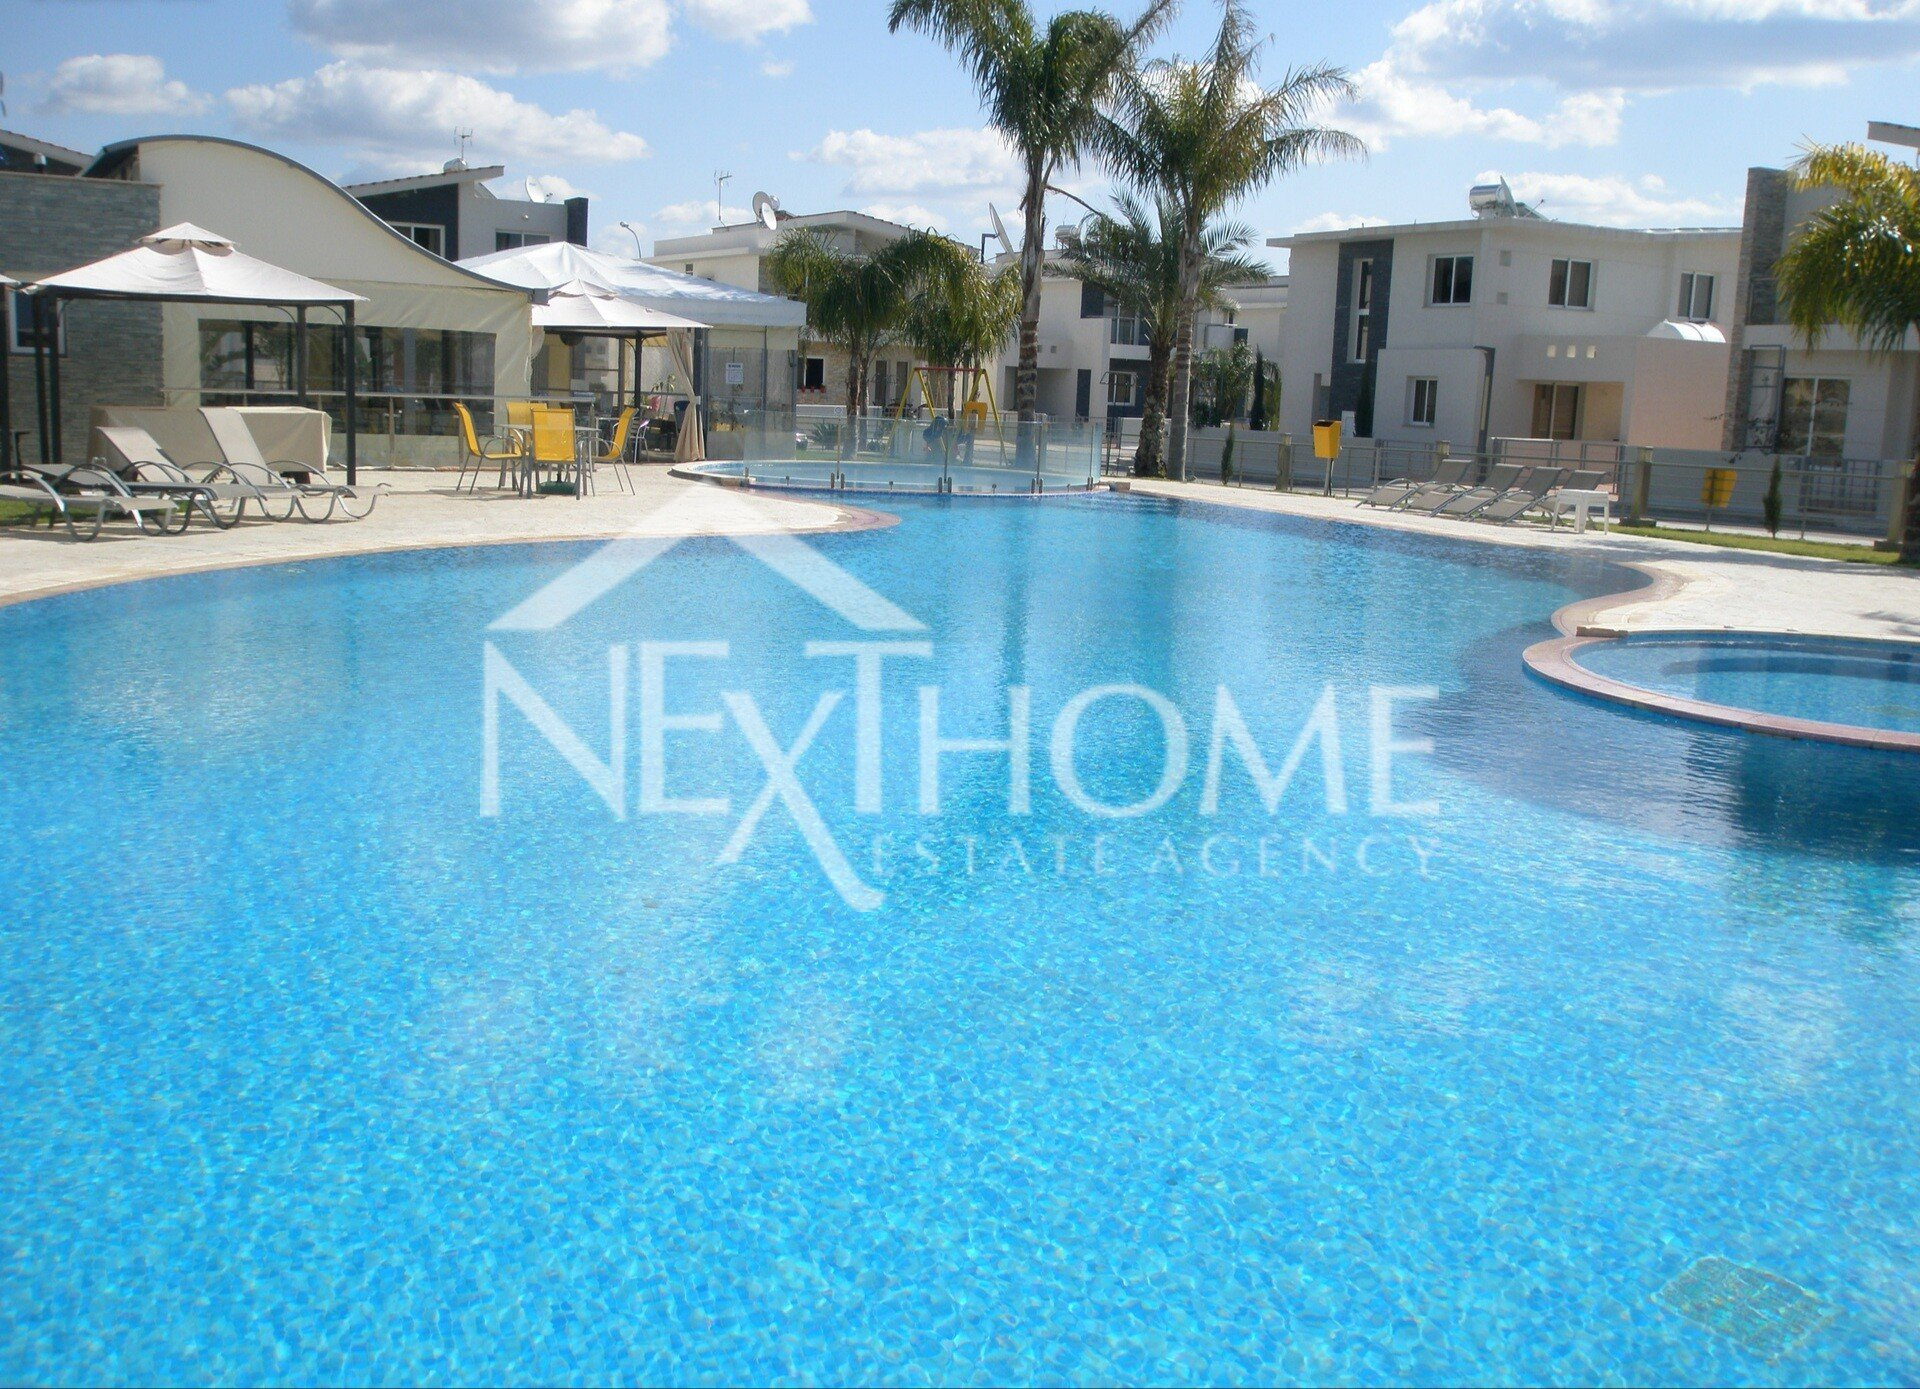 3 bedroom house for rent with sw pool in Pyla, Larnaca